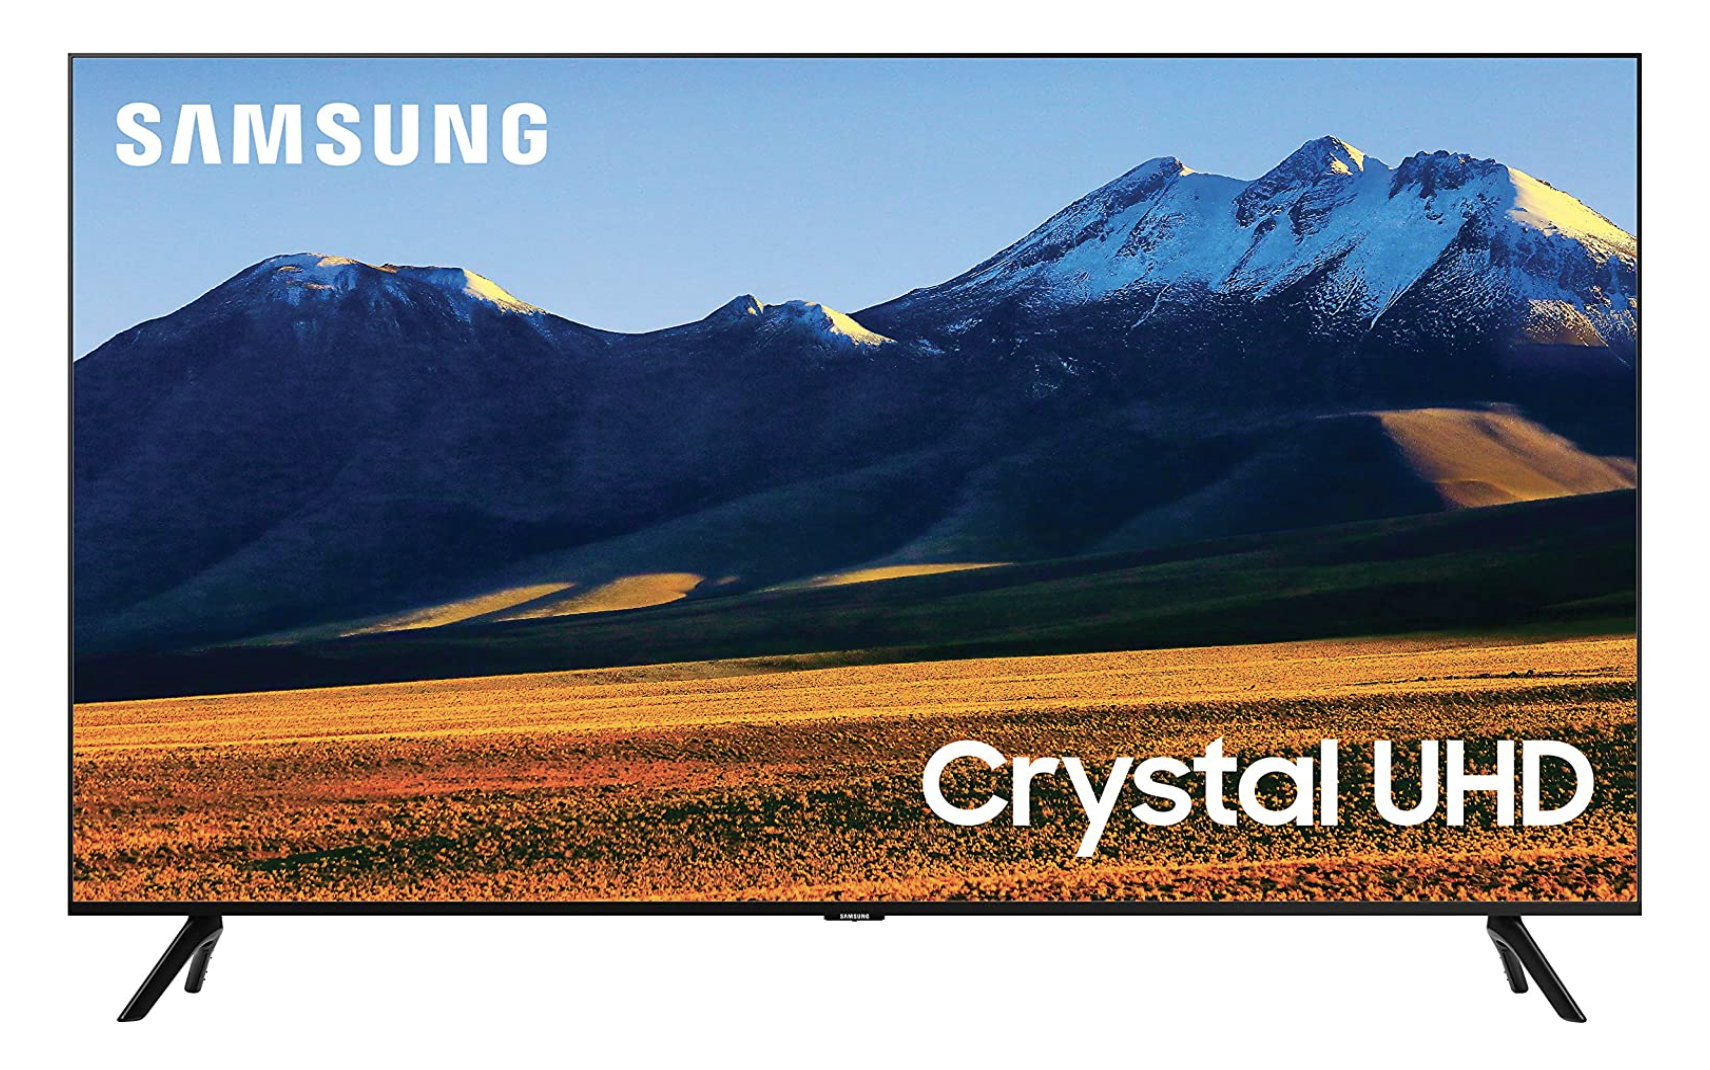 Oh, just an 86-inch Samsung 4K TV 2020 on sale for under $ 1,700